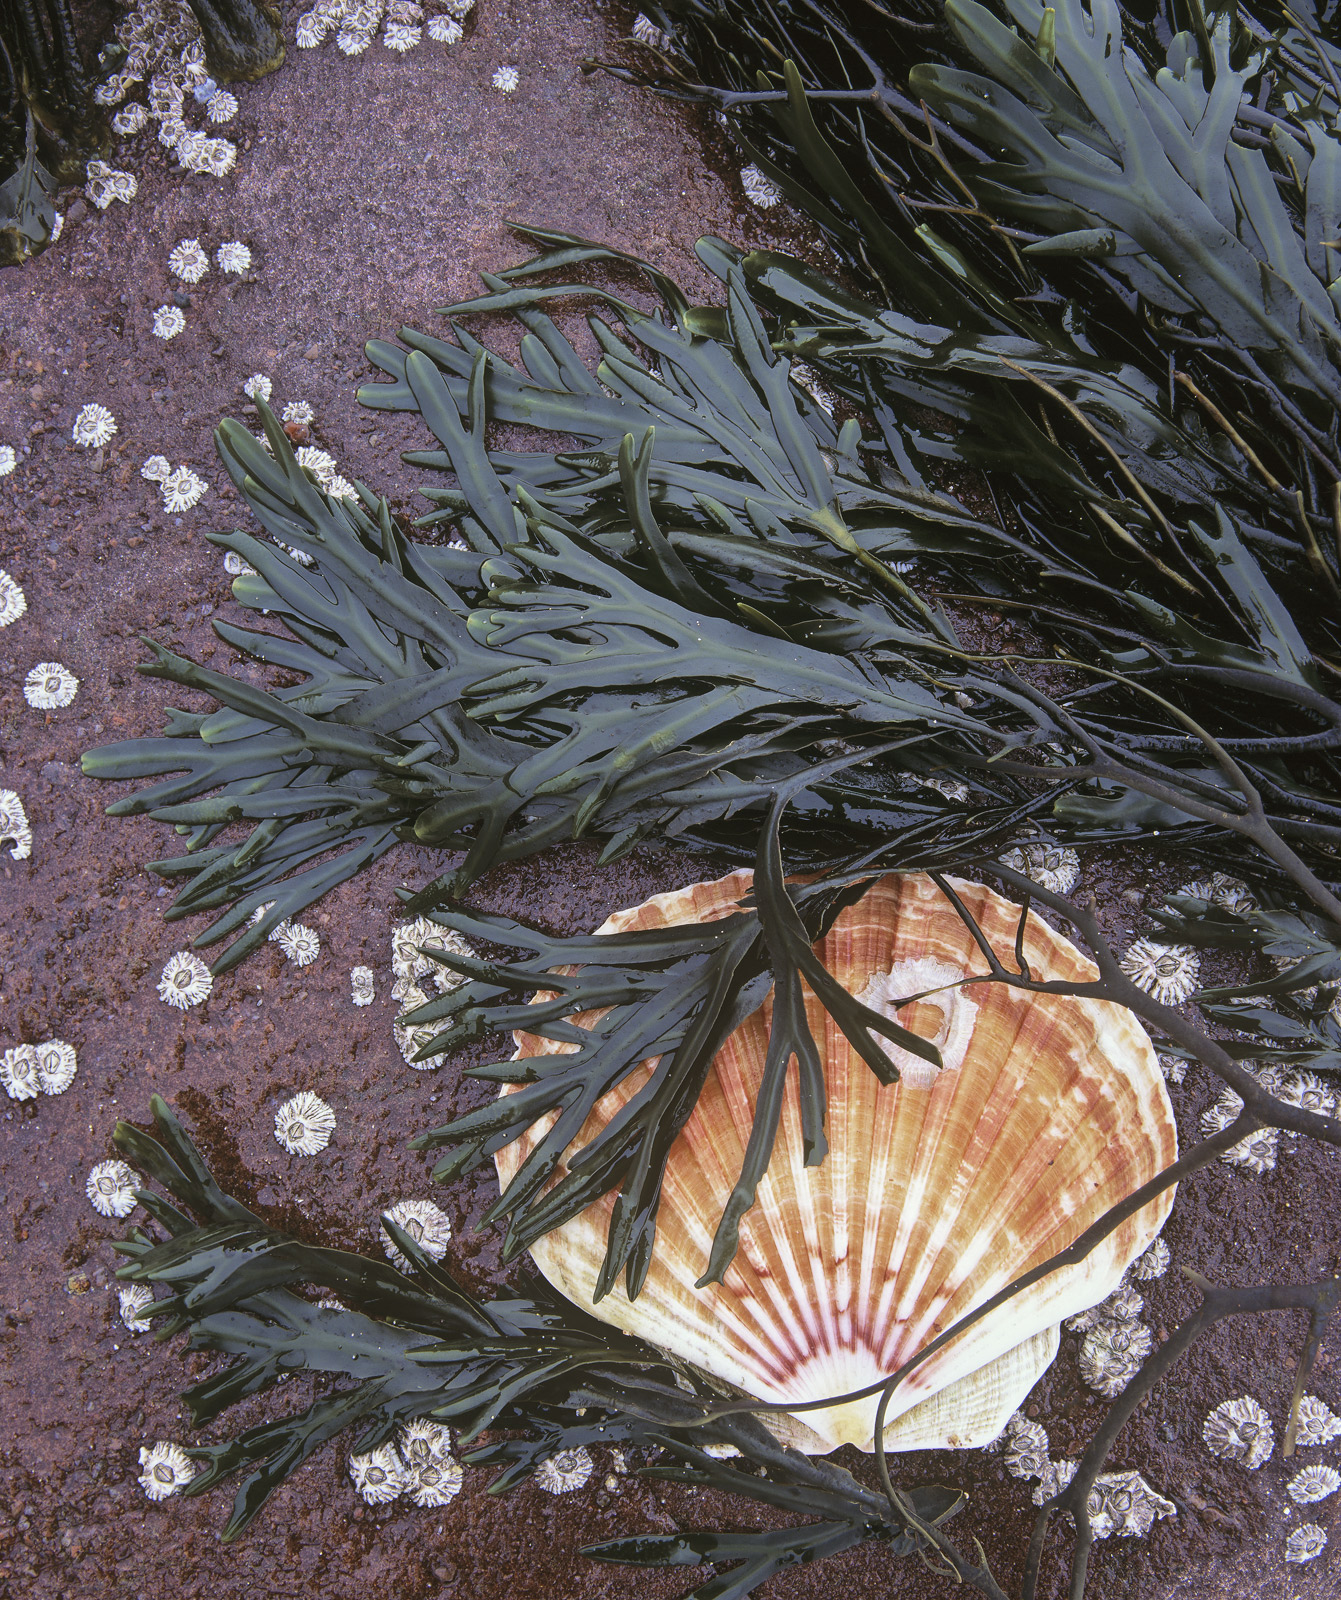 I came a cross this complete scallop shell trapped beneath some seaweed on a barnacle patterned piece of Torridonian sandstone...